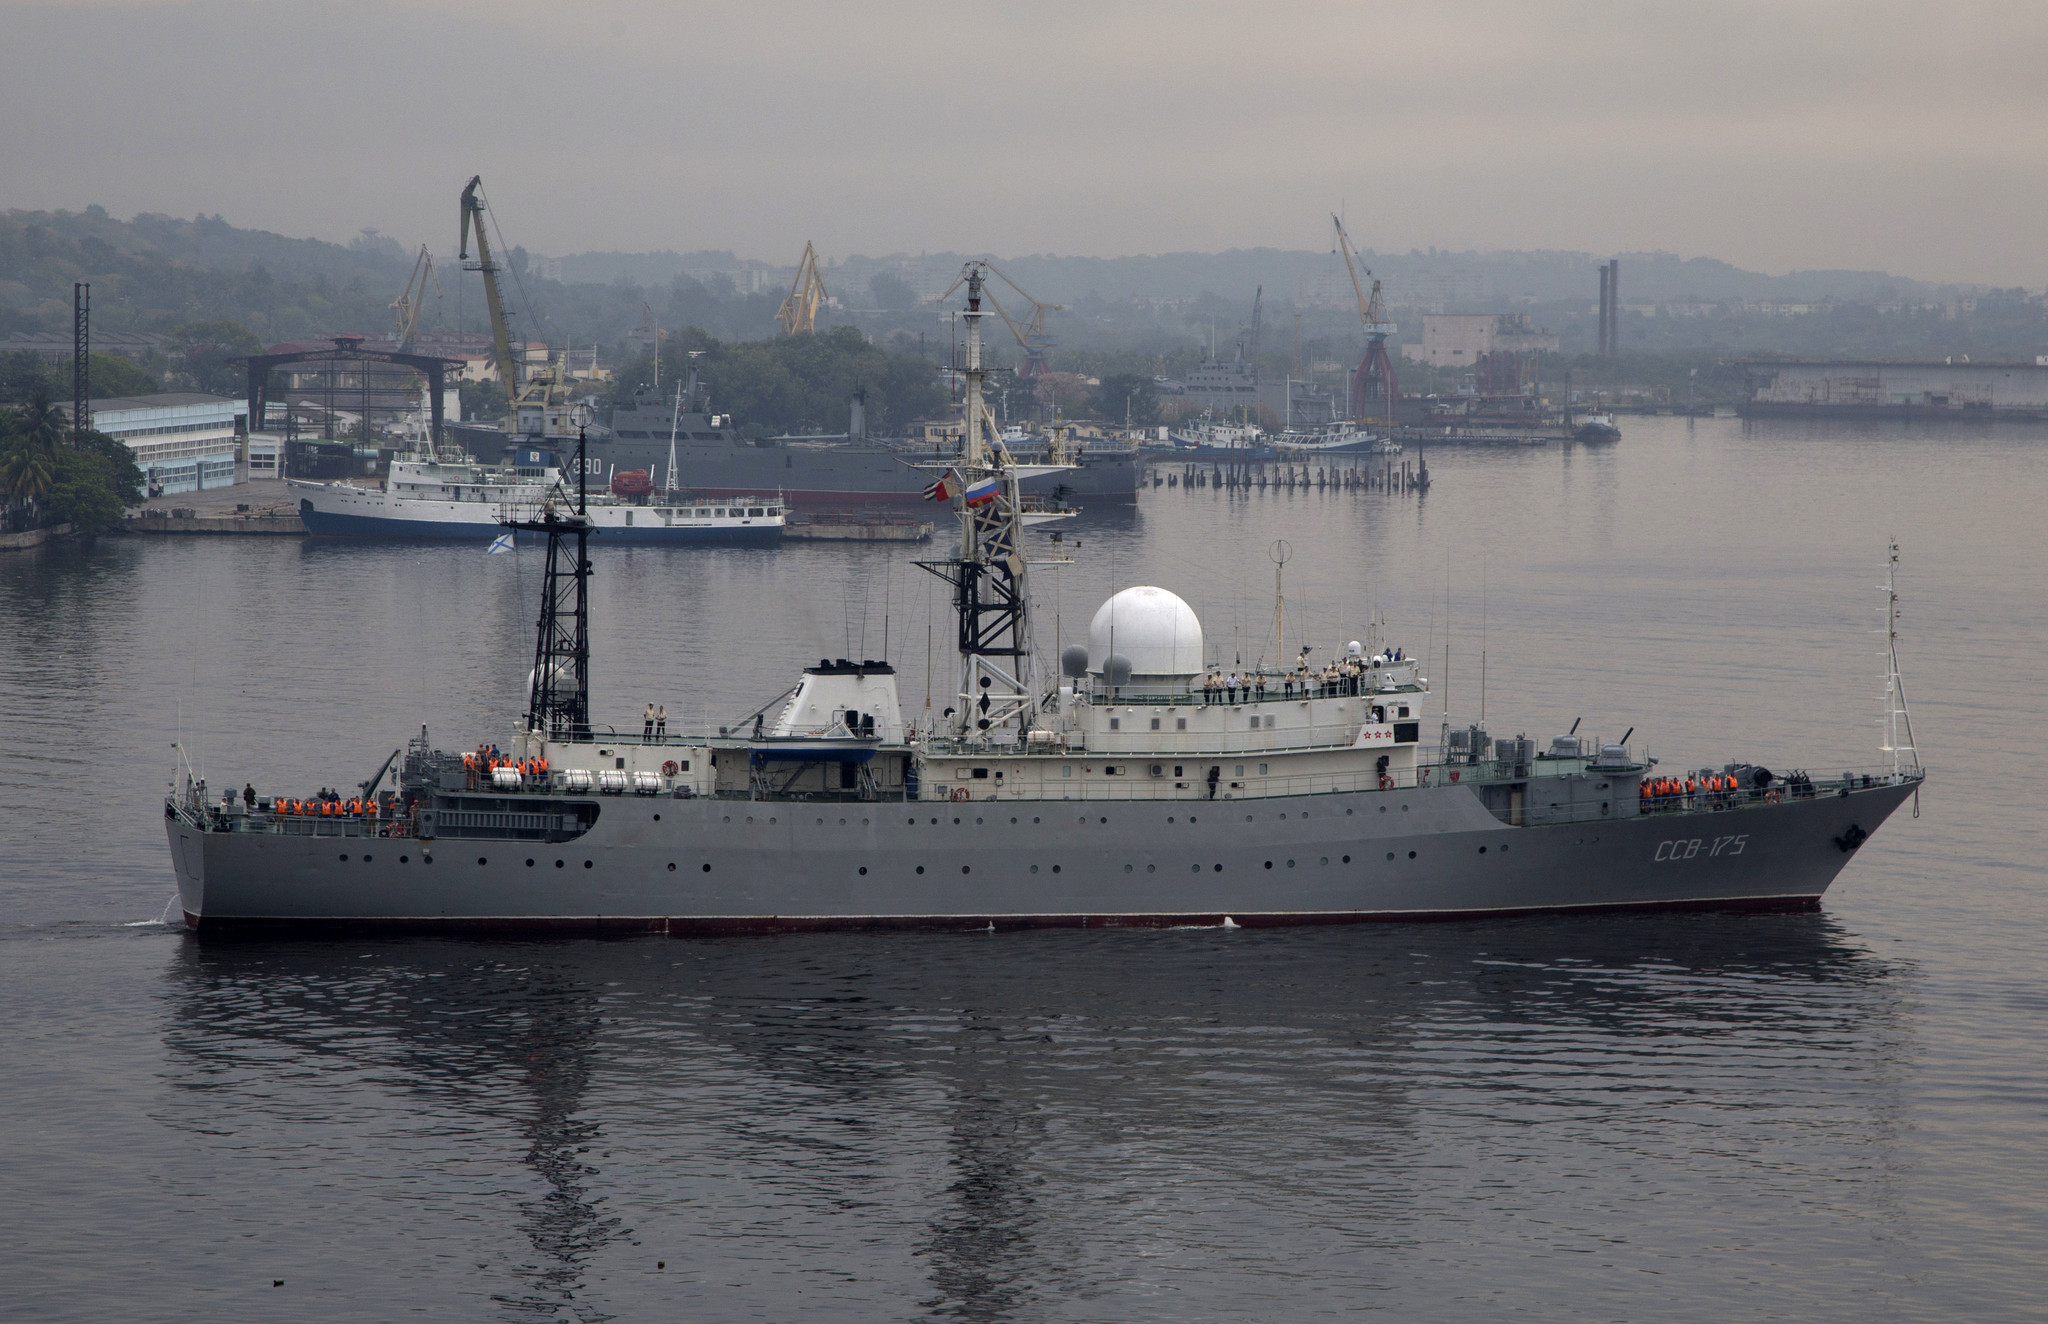 West Coast Corvette >> Coast Guard Tracking Russian Spy Ship Near Submarine Base In Groton - Hartford Courant